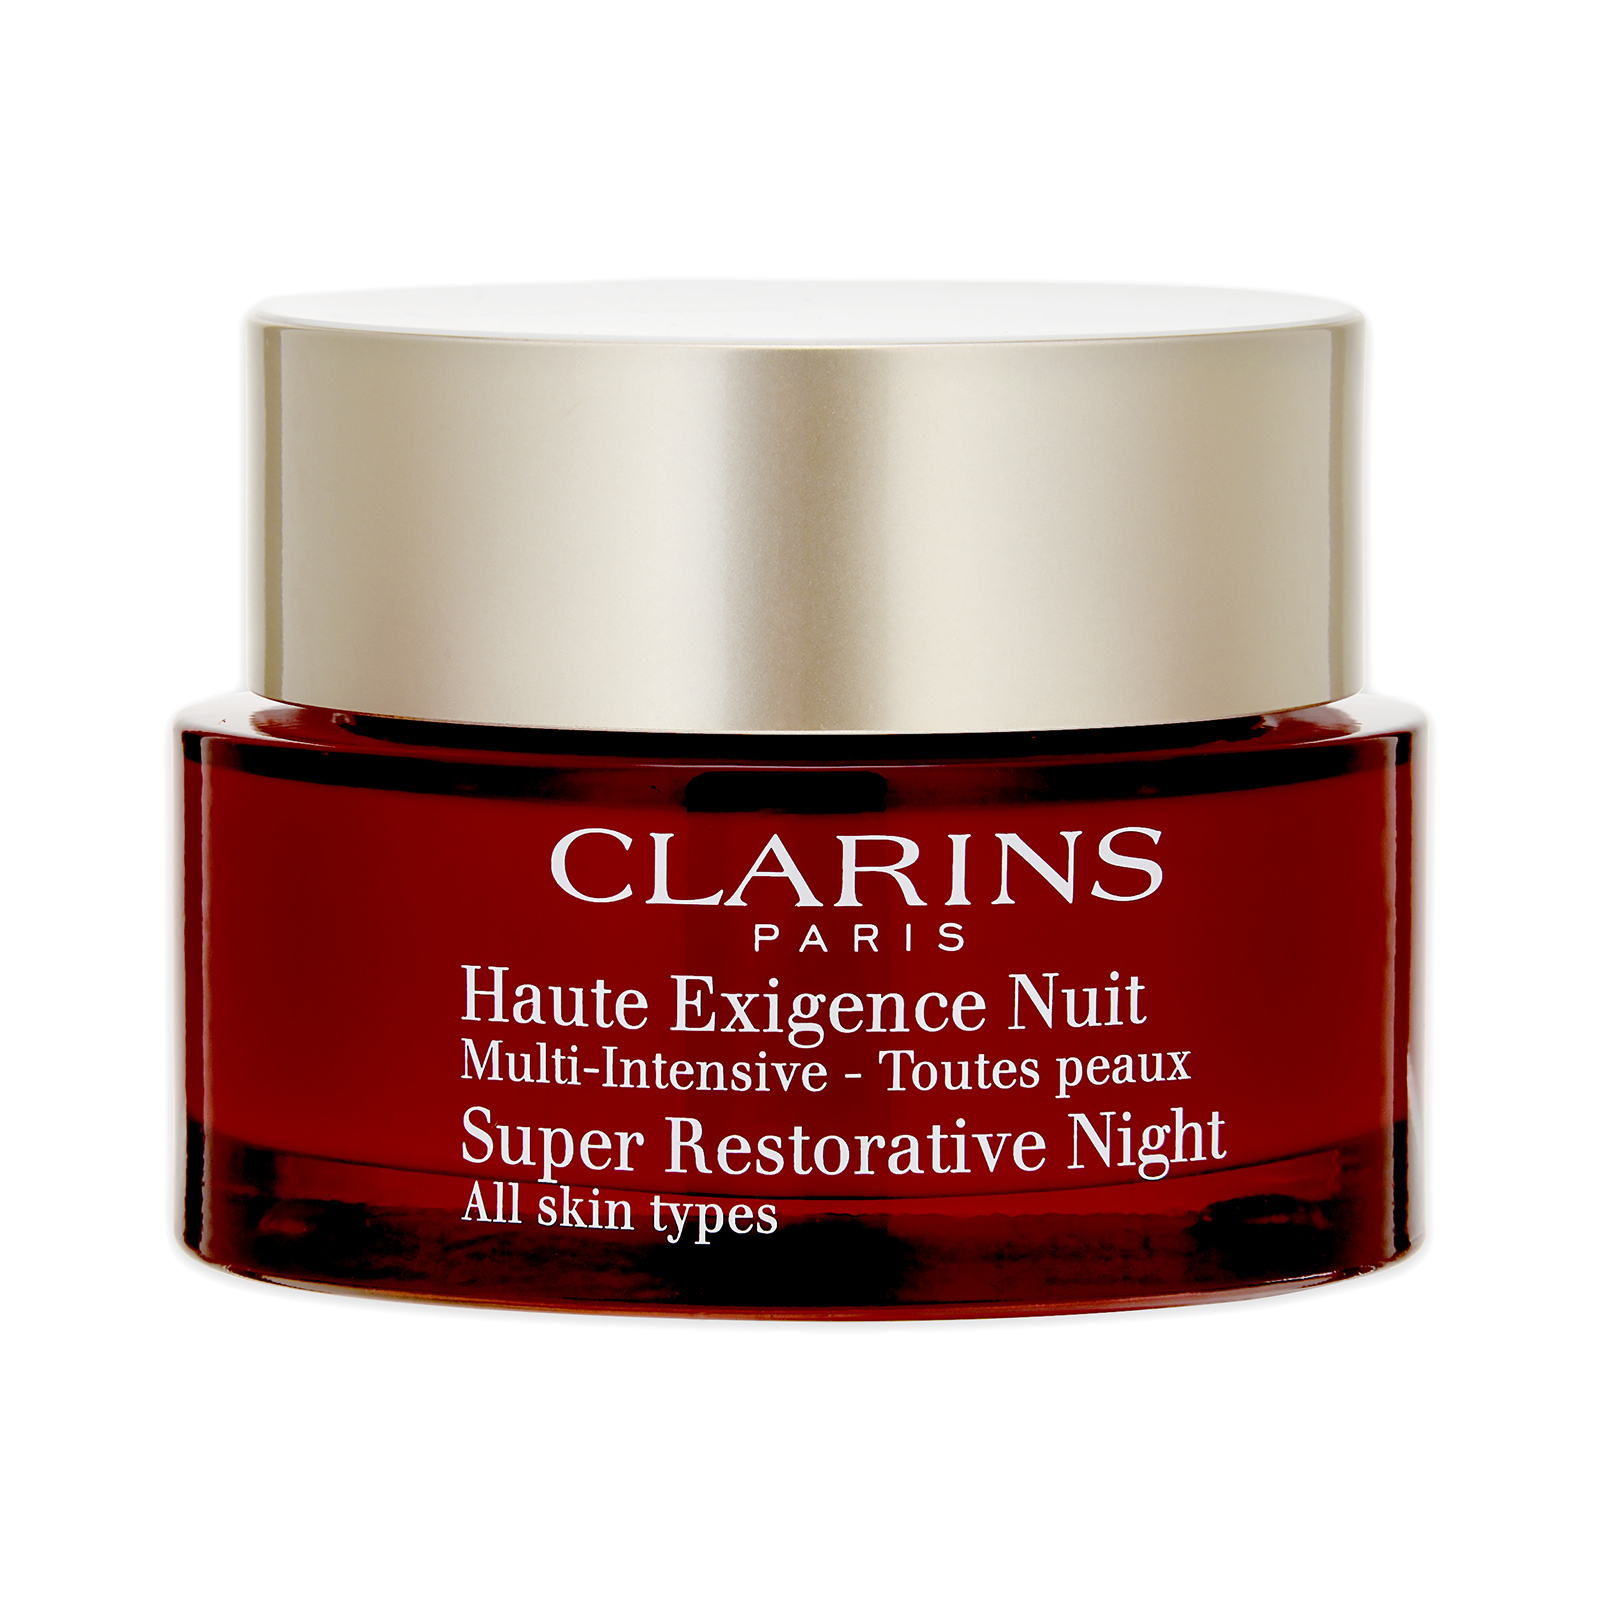 Clarins Super Restorative  Night Age Spot Correcting Replenishing Cream (For All Skins) 1.6oz, 50ml from Cosme-De.com